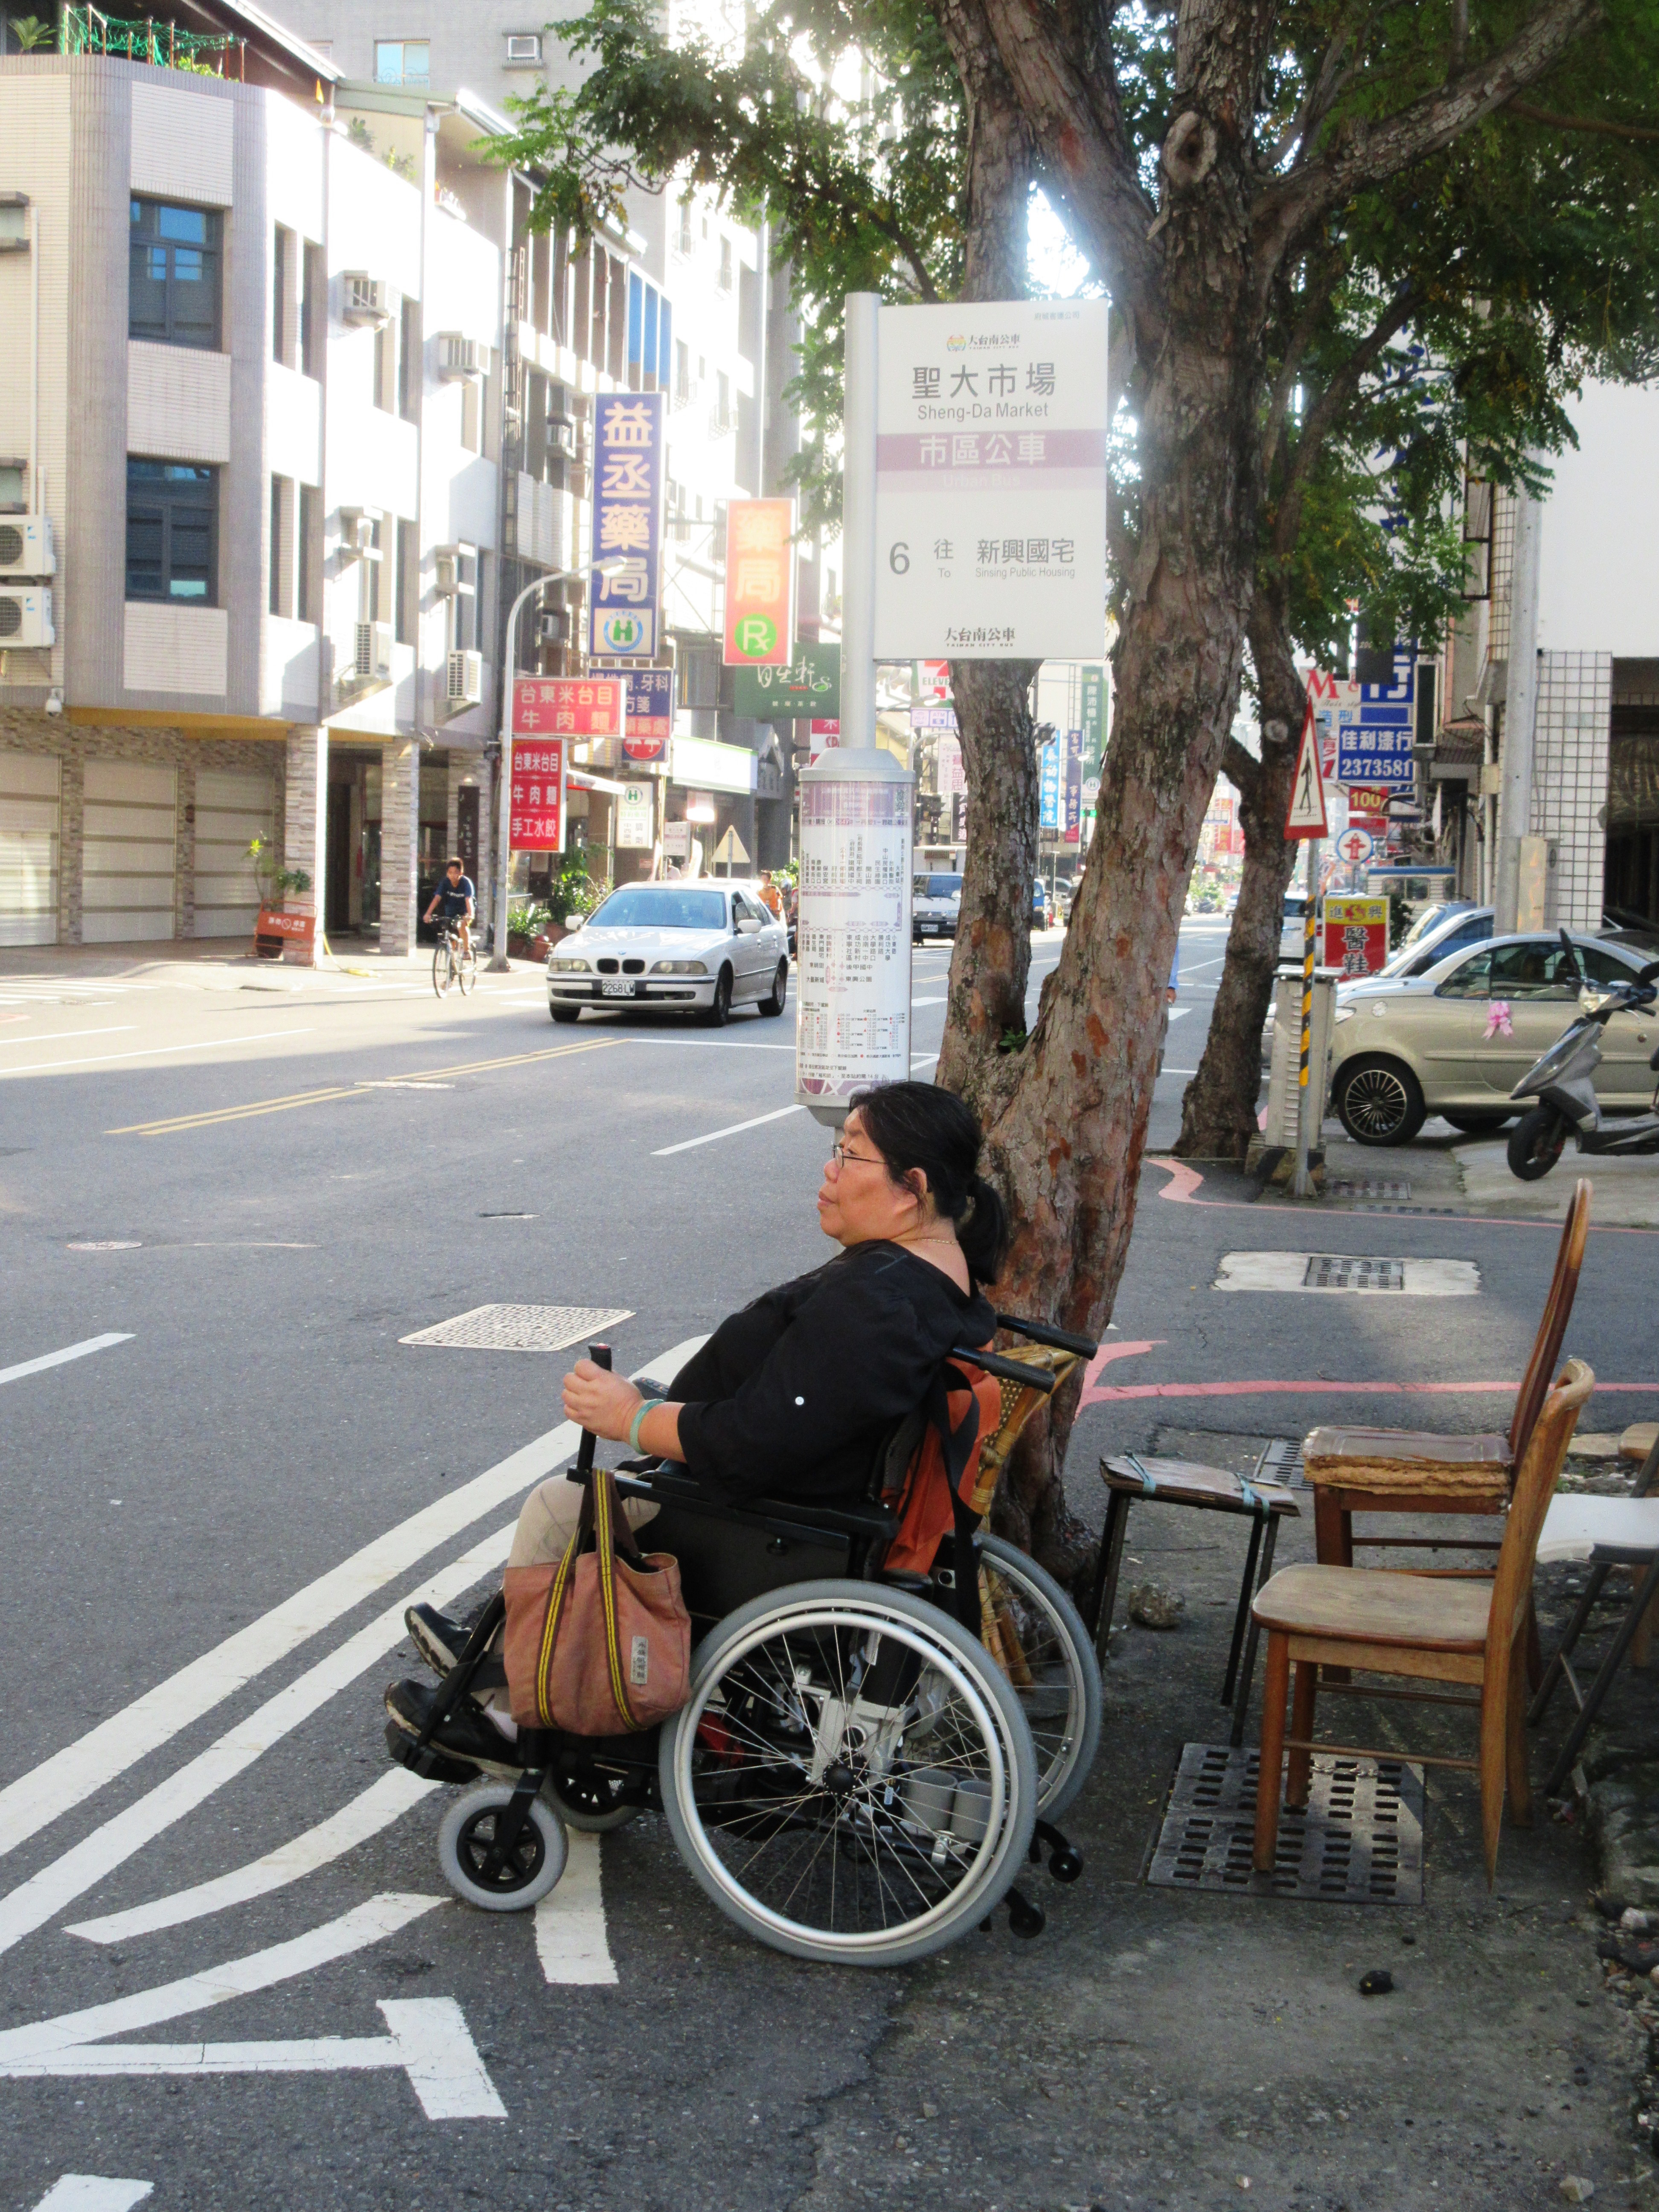 A disabled person was waiting for the bus. Photo / Wen Zih-syuan